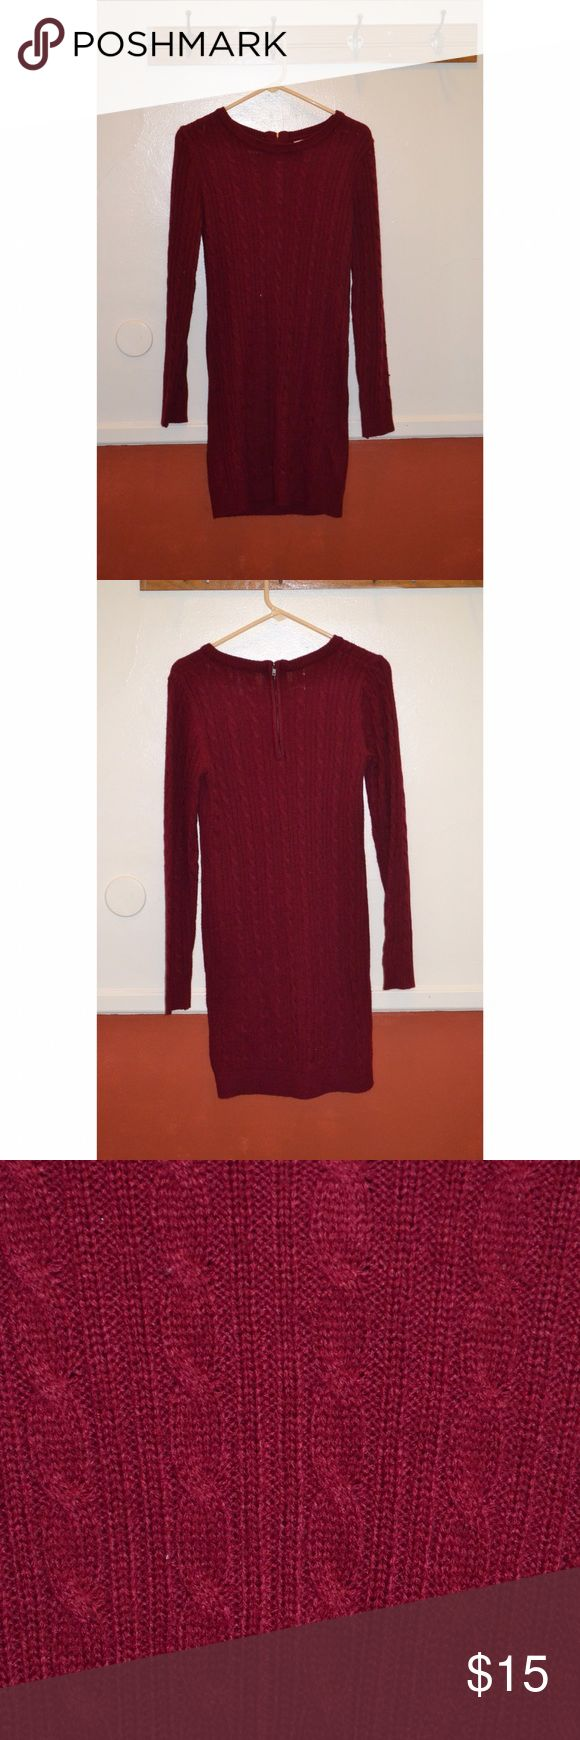 Maroon sweater dress Knitted sweater dress. Zipper in back. Form fitting but no tight. Length is about mid thigh. (I'm 5'5.) worn a couple times, still in great condition. Soft, not at all itchy. Has a little give to it, it's a medium and I typically wear larger or extra large, so truthfully I think would fit either medium or large. Forever 21 Dresses Long Sleeve